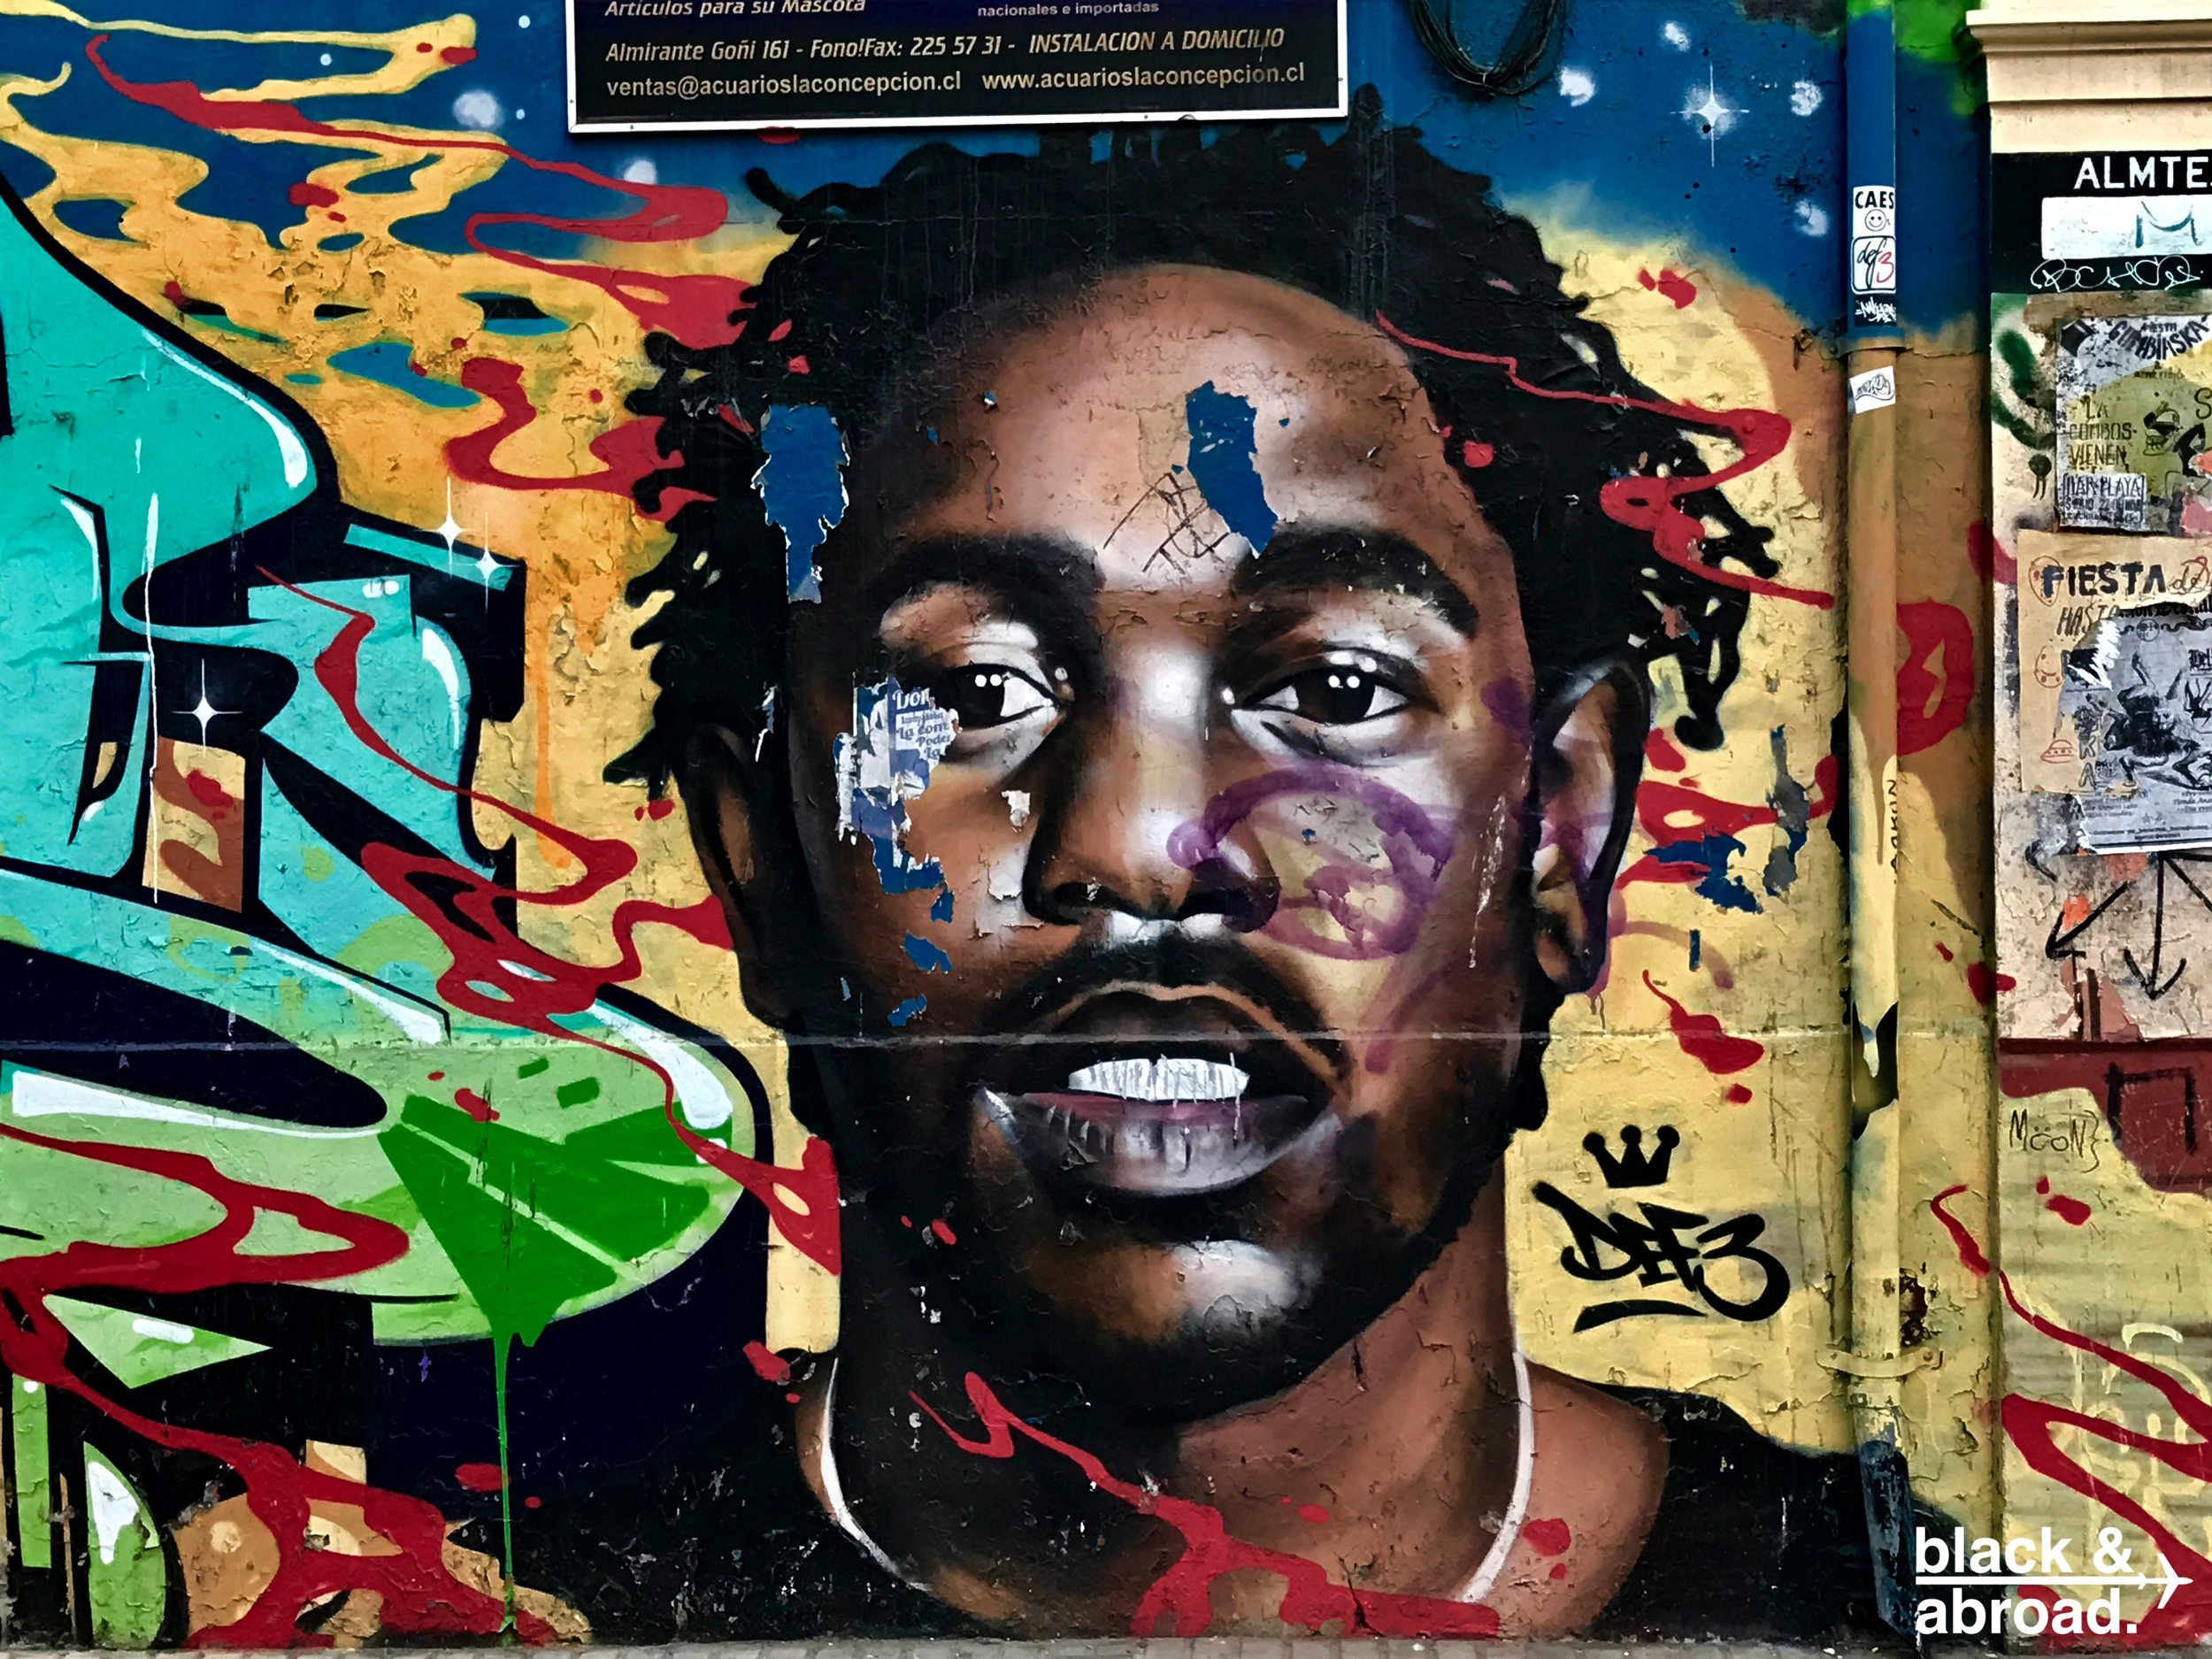 A mural of Kendrick Lamar was one of the more interesting street art pieces we came across while in Valpo!